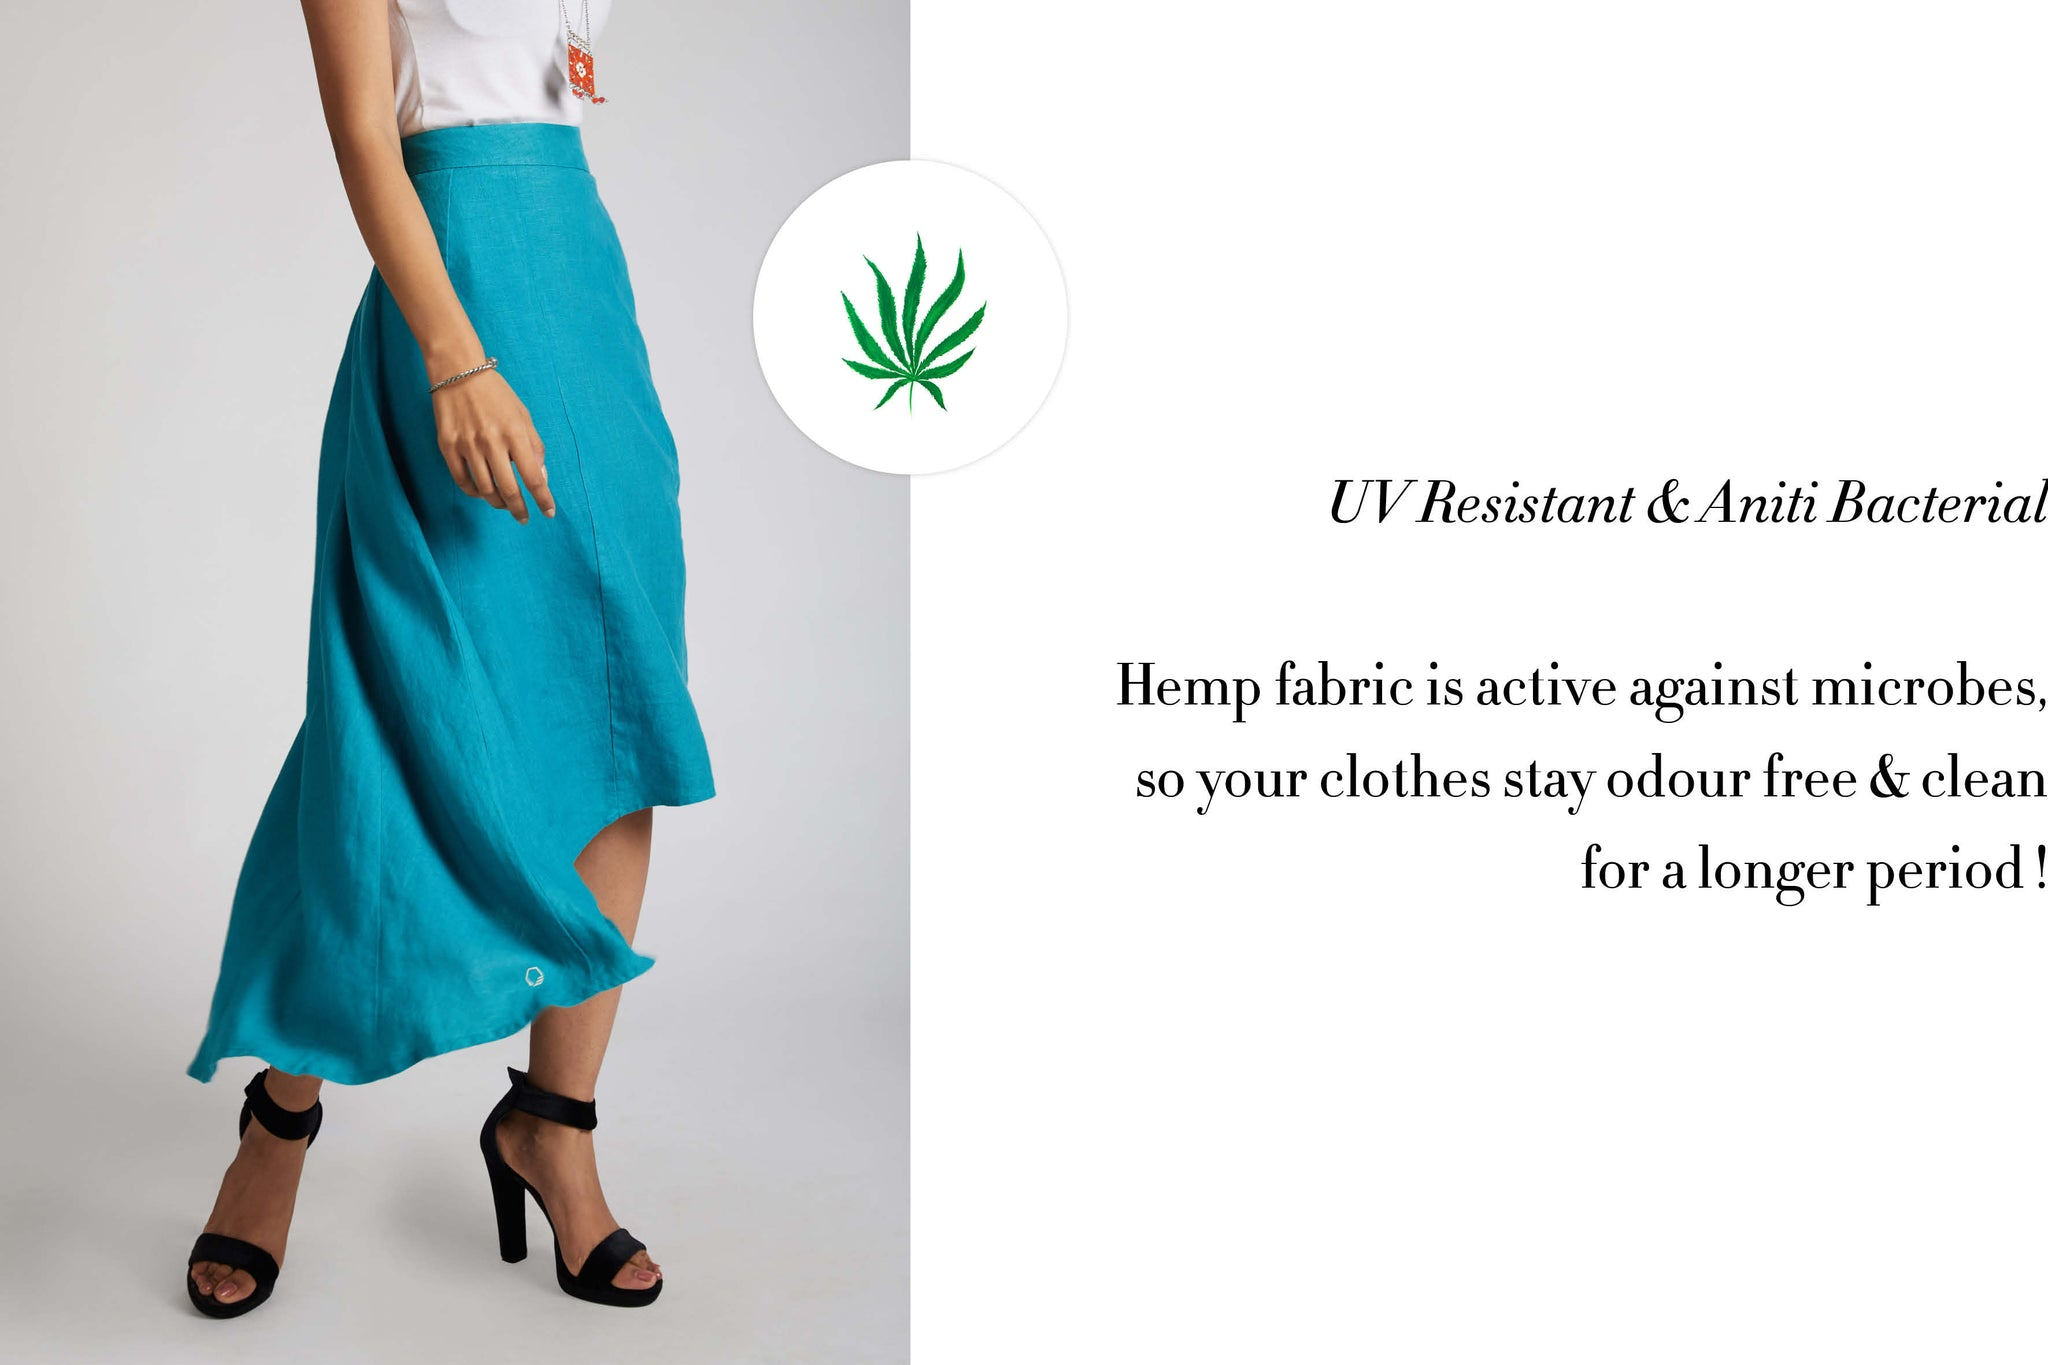 UV resistant and anti bacterial . hemp fabric is active against microbes, so your clothes stay odor free and clean for a longer period